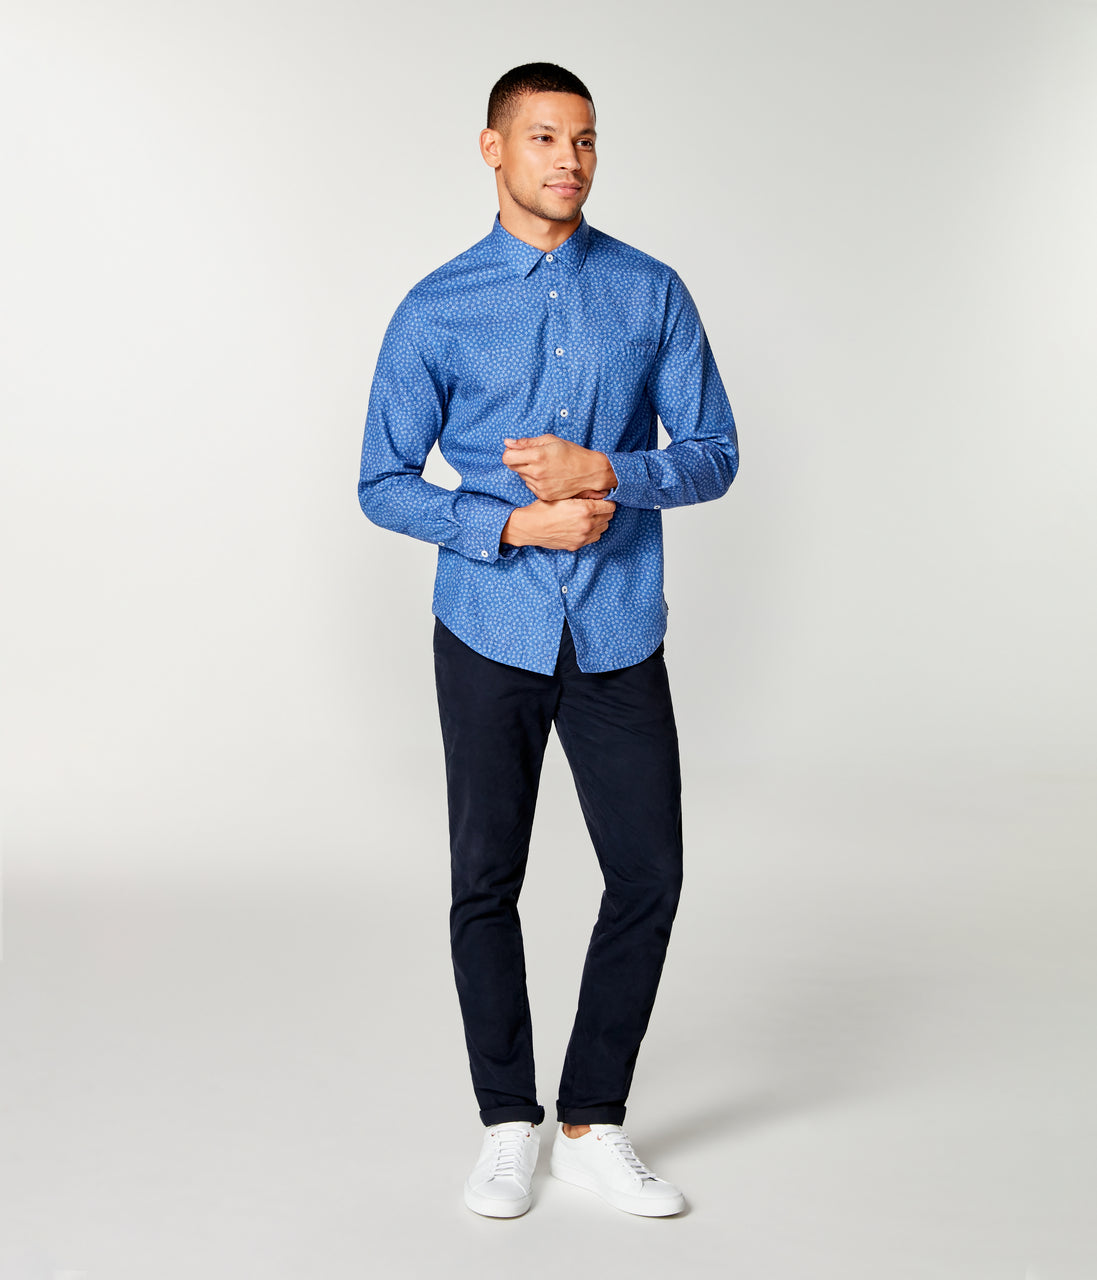 On-Point Print Shirt - Indigo Square Dot - Good Man Brand - On-Point Print Shirt - Indigo Square Dot